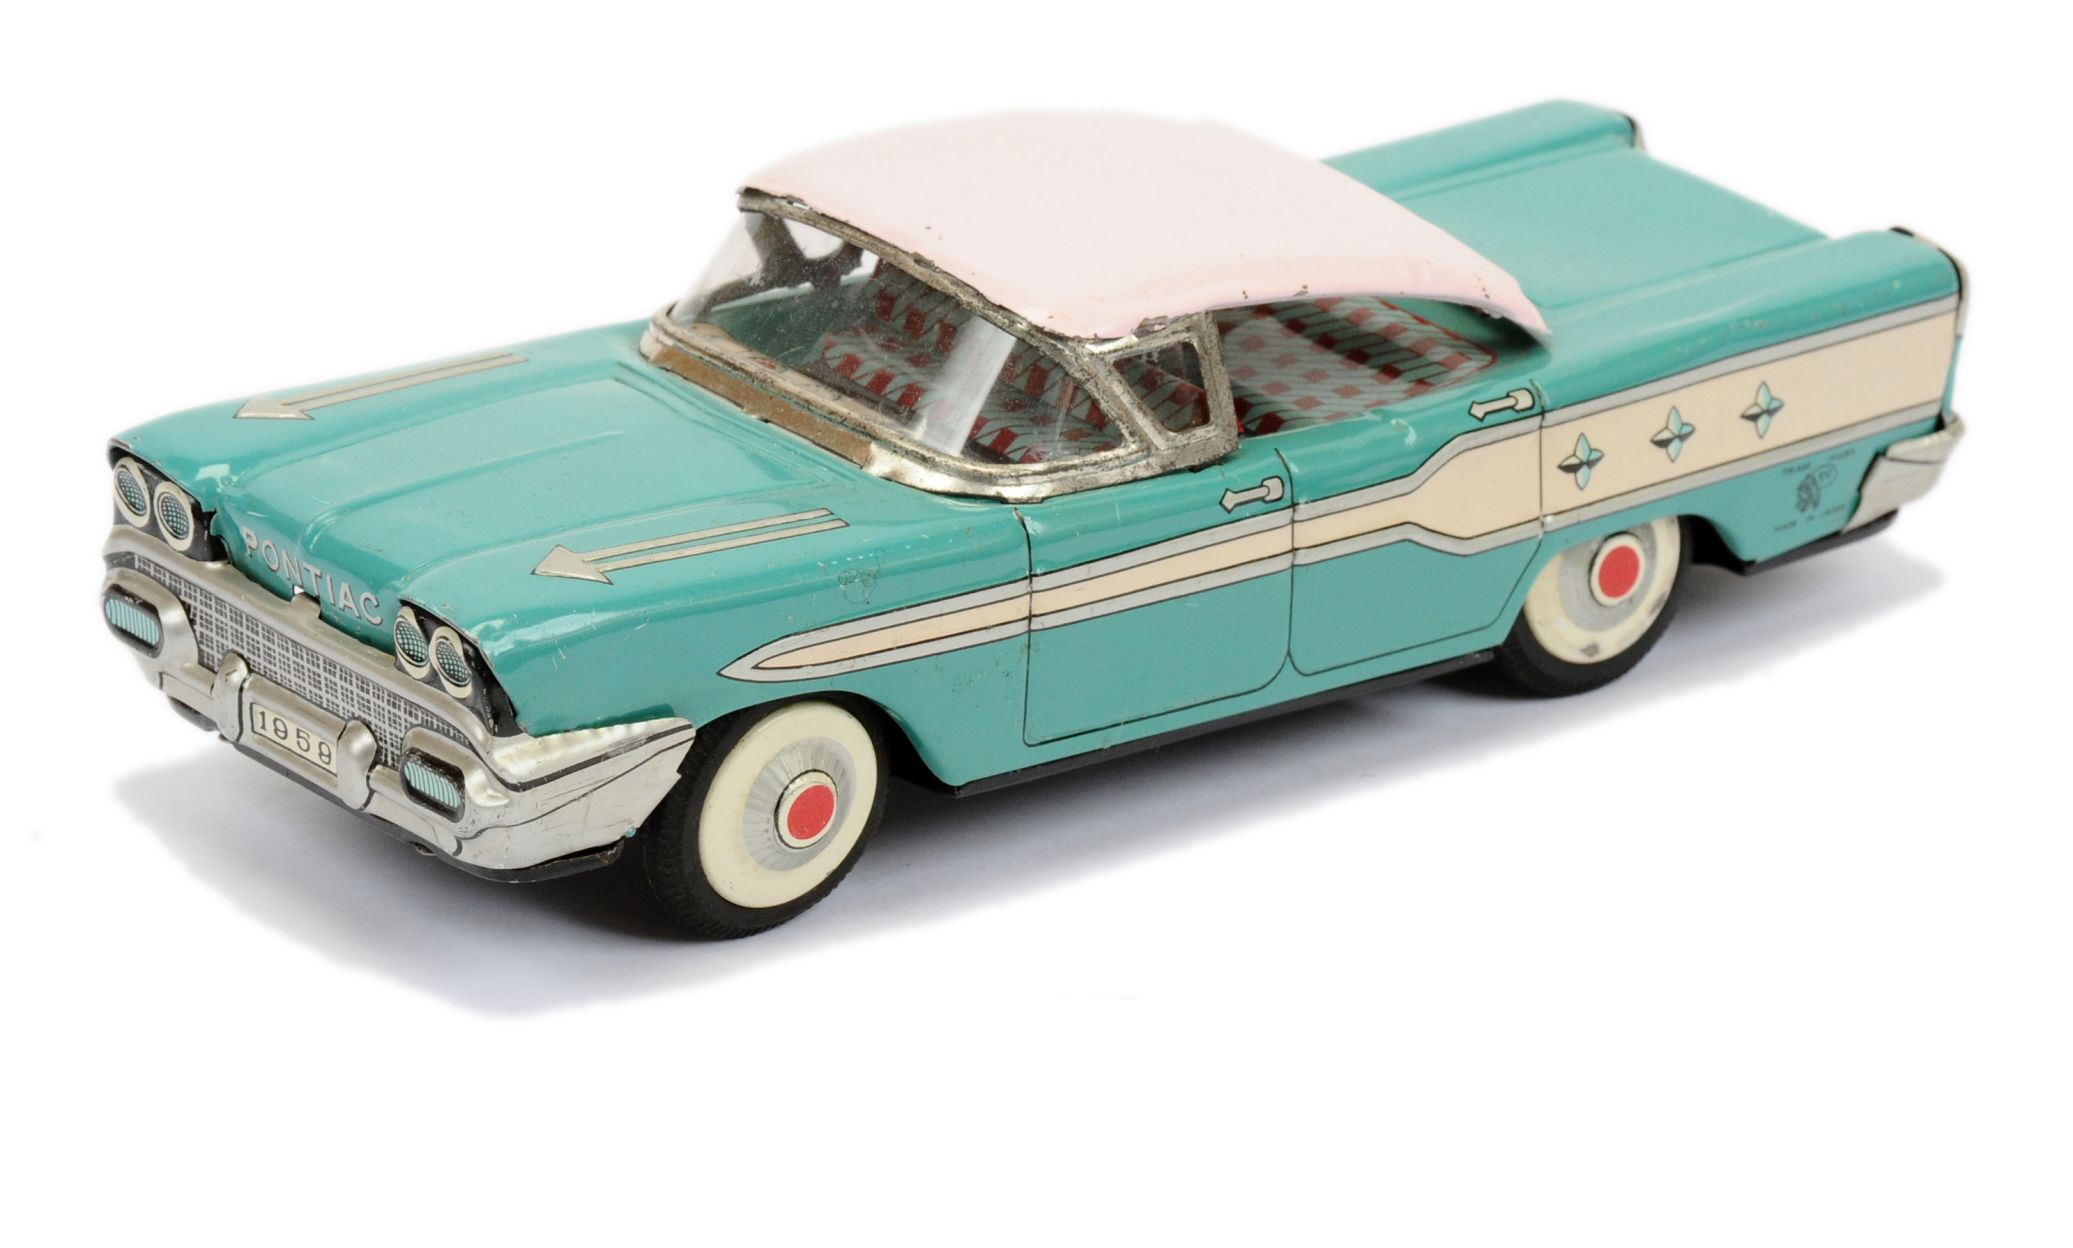 ATC (Japan) 1959 Pontiac Bonneville tinplate car  15th January 2020 Lot 659